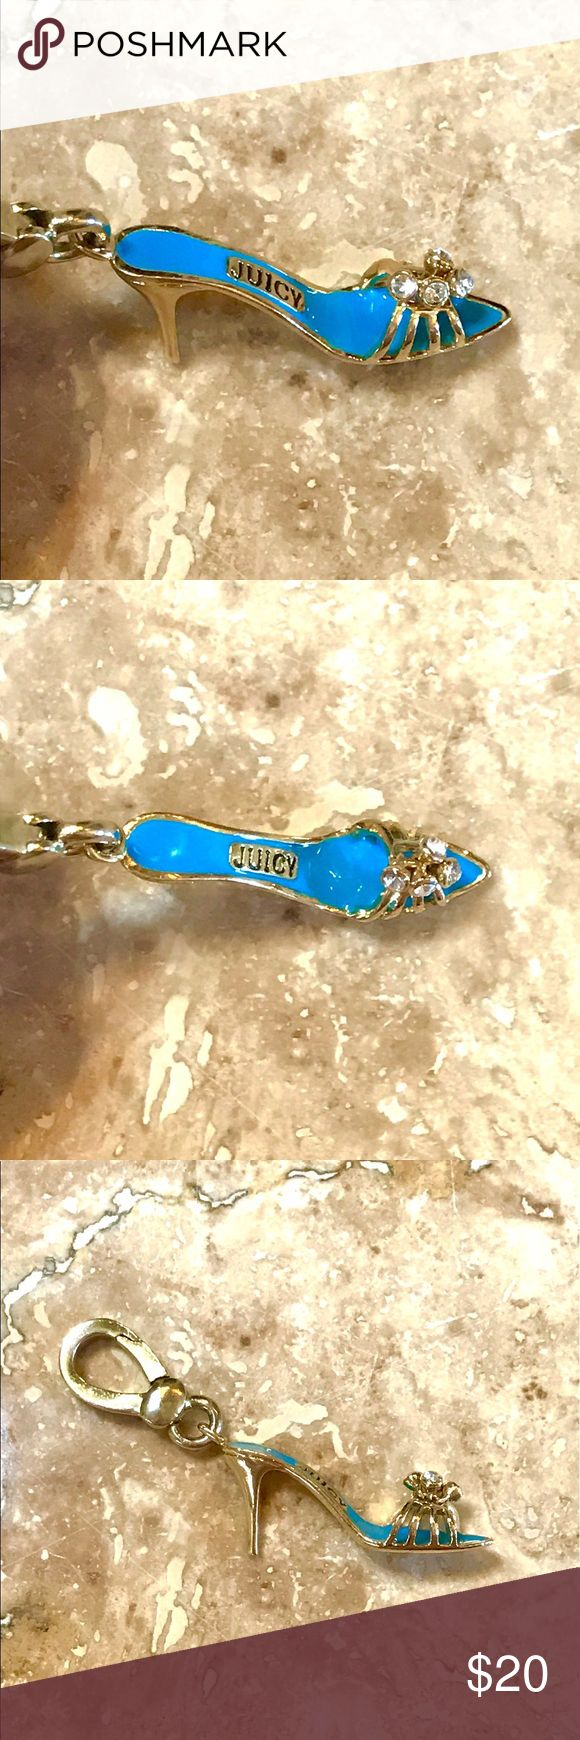 Juicy Couture High Heel blue gold shoe Charm Juicy Couture High Heel shoe Charm. Gold tone with blue enamel. No chips in enamel. Engraved with Juicy Couture with crown on the bottom of the shoe. Front of shoe has 4 dangling jewels that move. Super Cute. Juicy Couture Jewelry